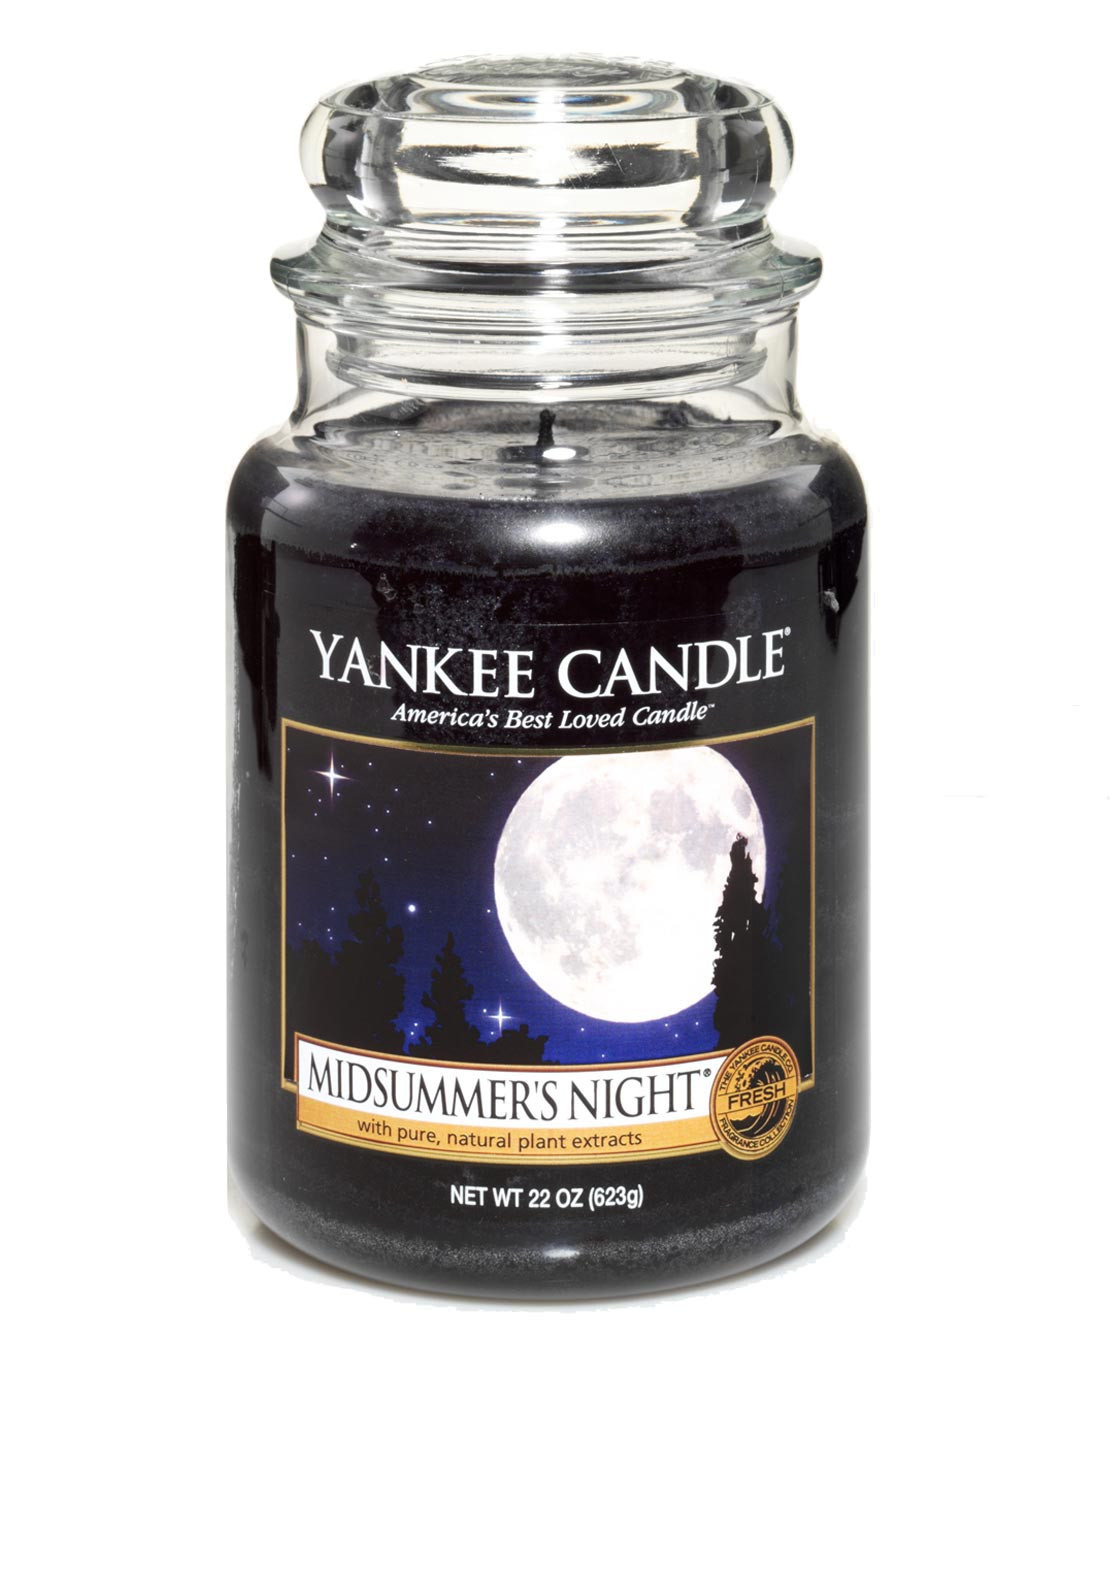 Yankee Candle Large Classic Jar, Midsummer's Night